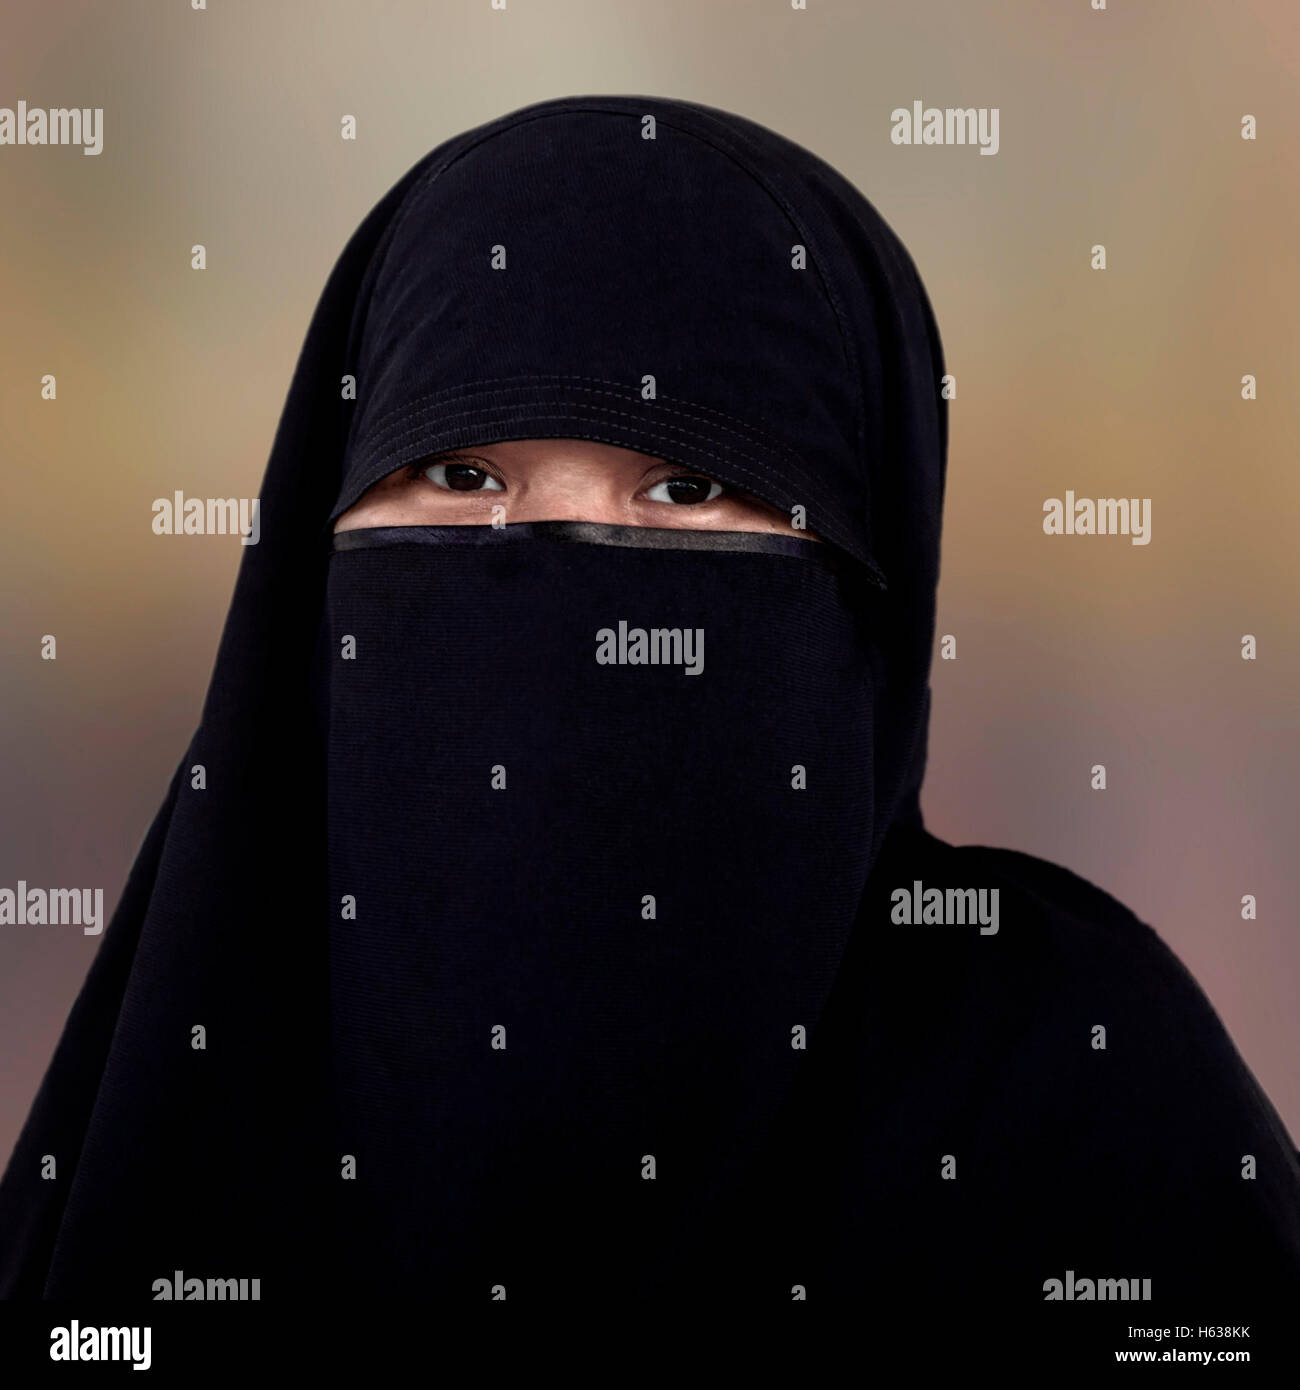 Muslim woman niqab burka isolated against a plain background. Woman eyes hijab - Stock Image